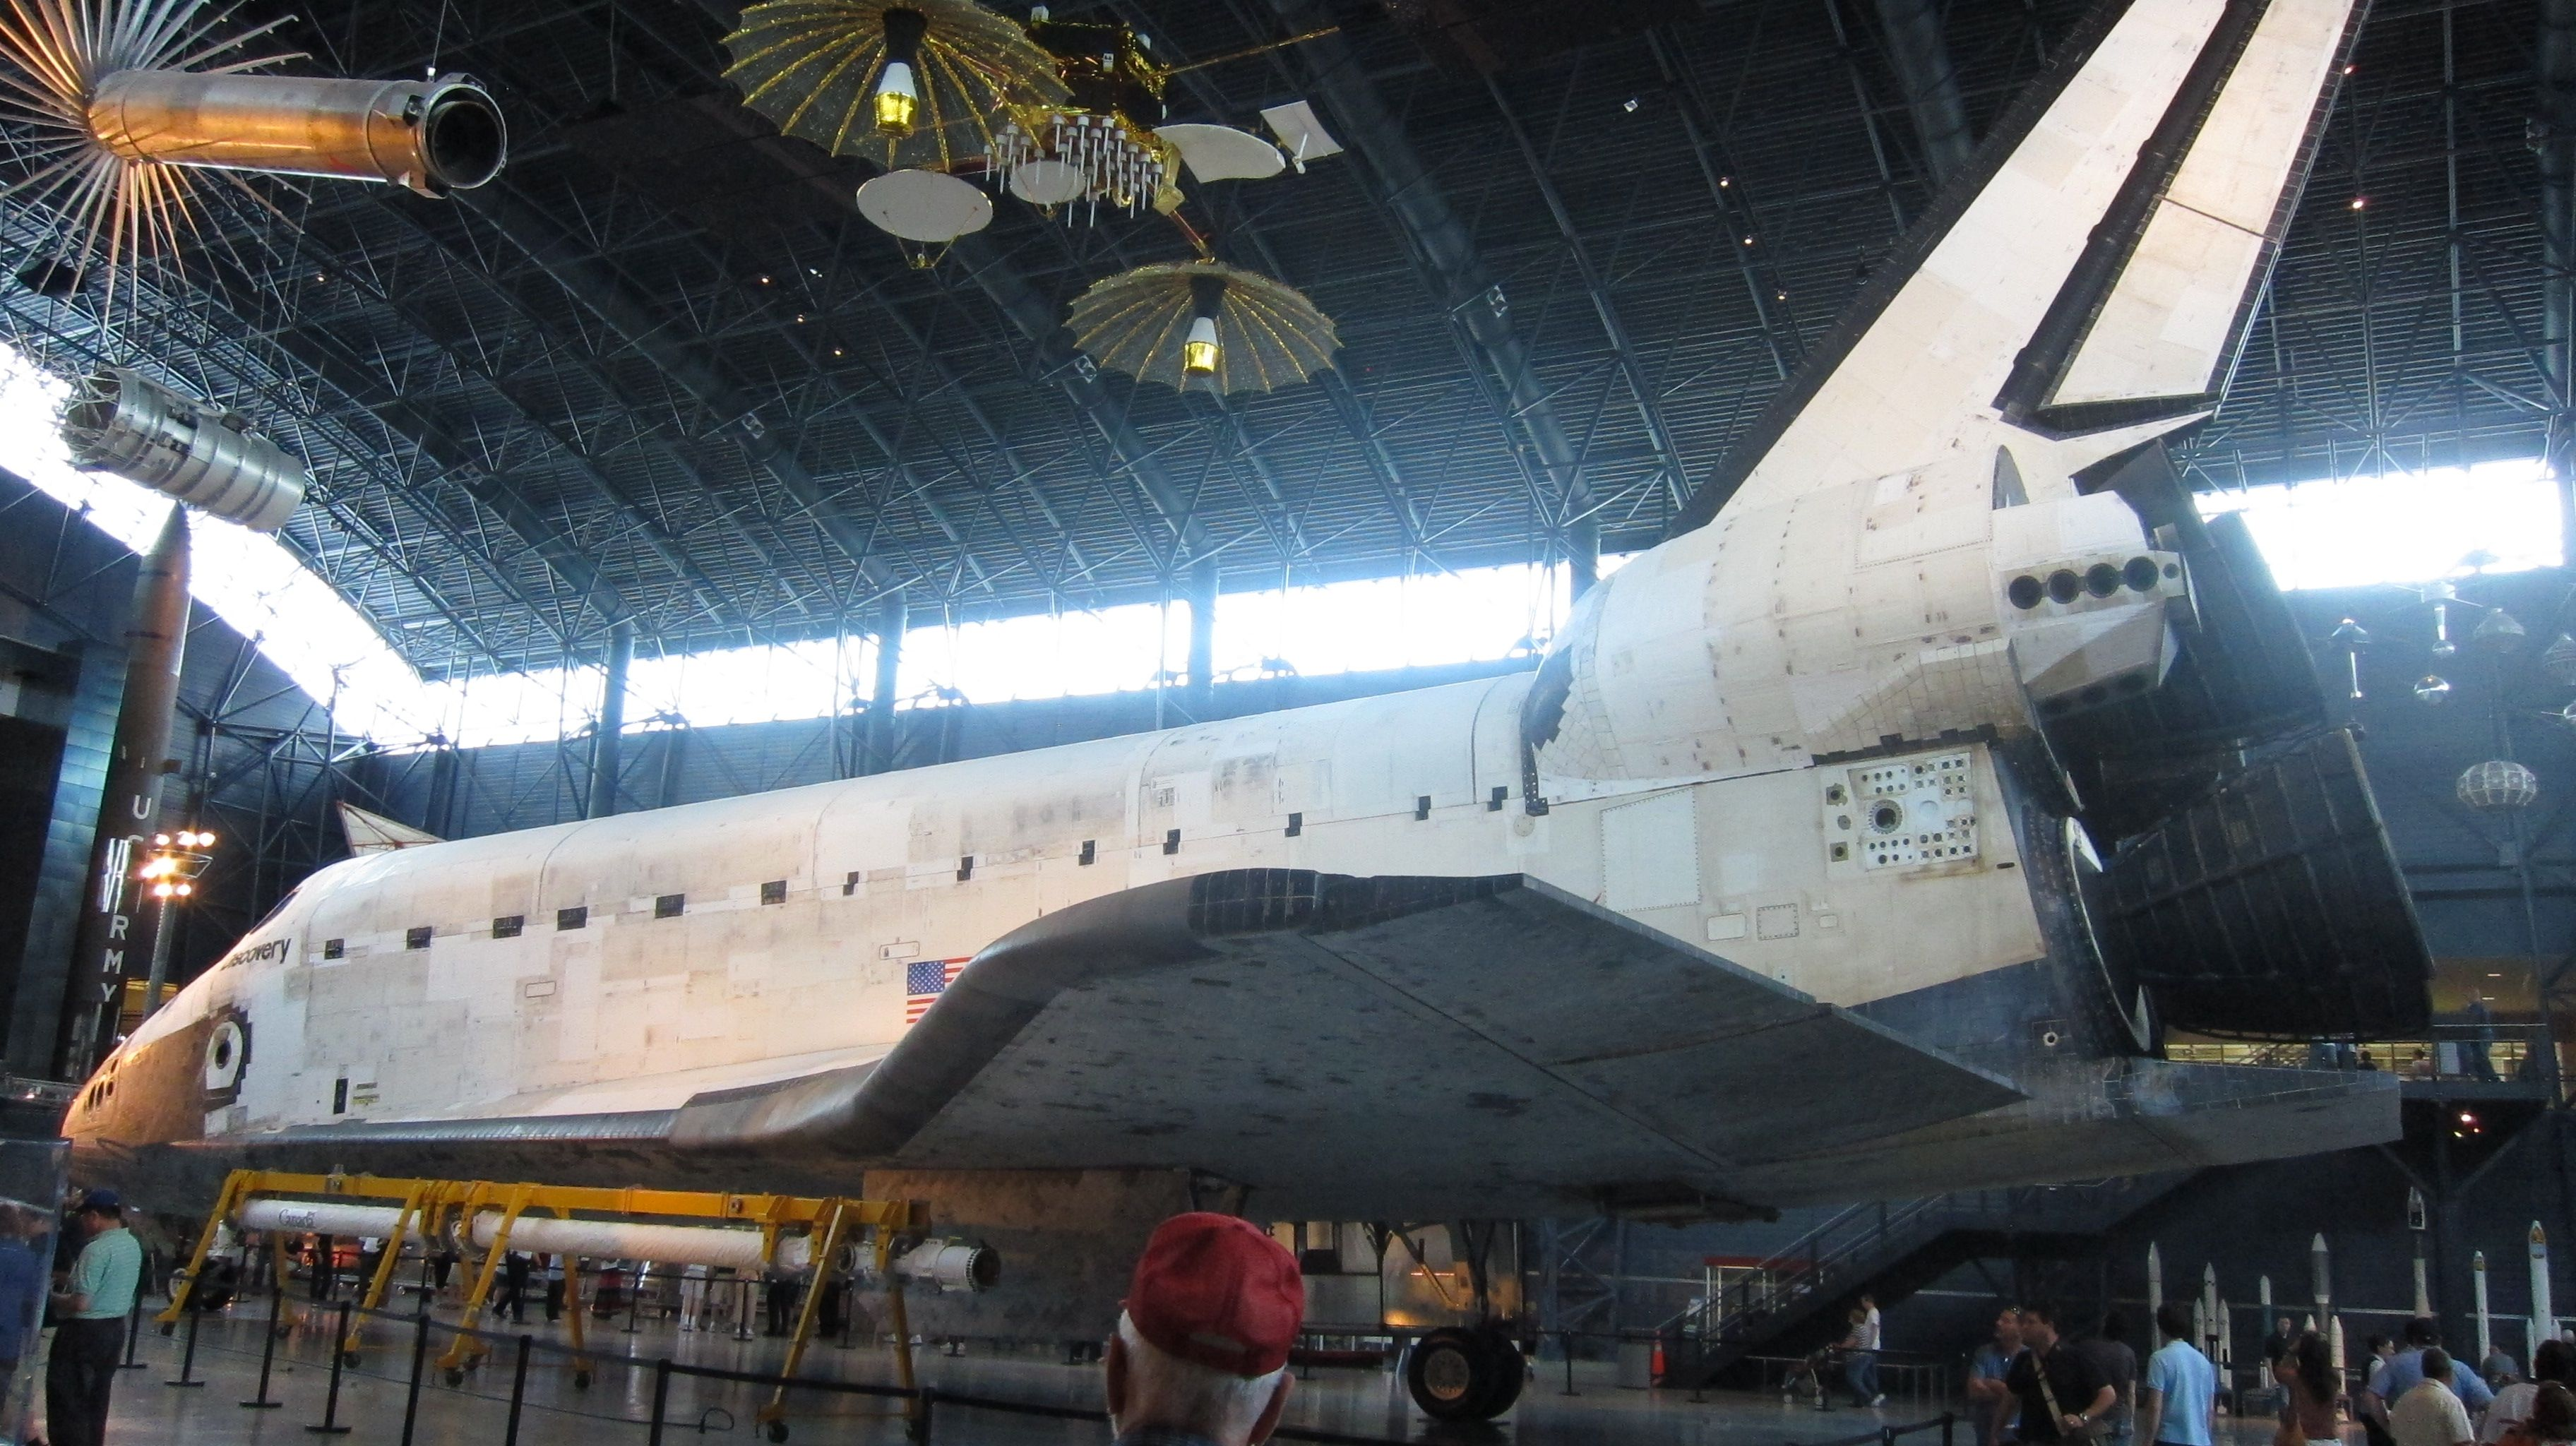 Space Shuttle Discovery at the Steven F. Udvar-Hazy Center ...